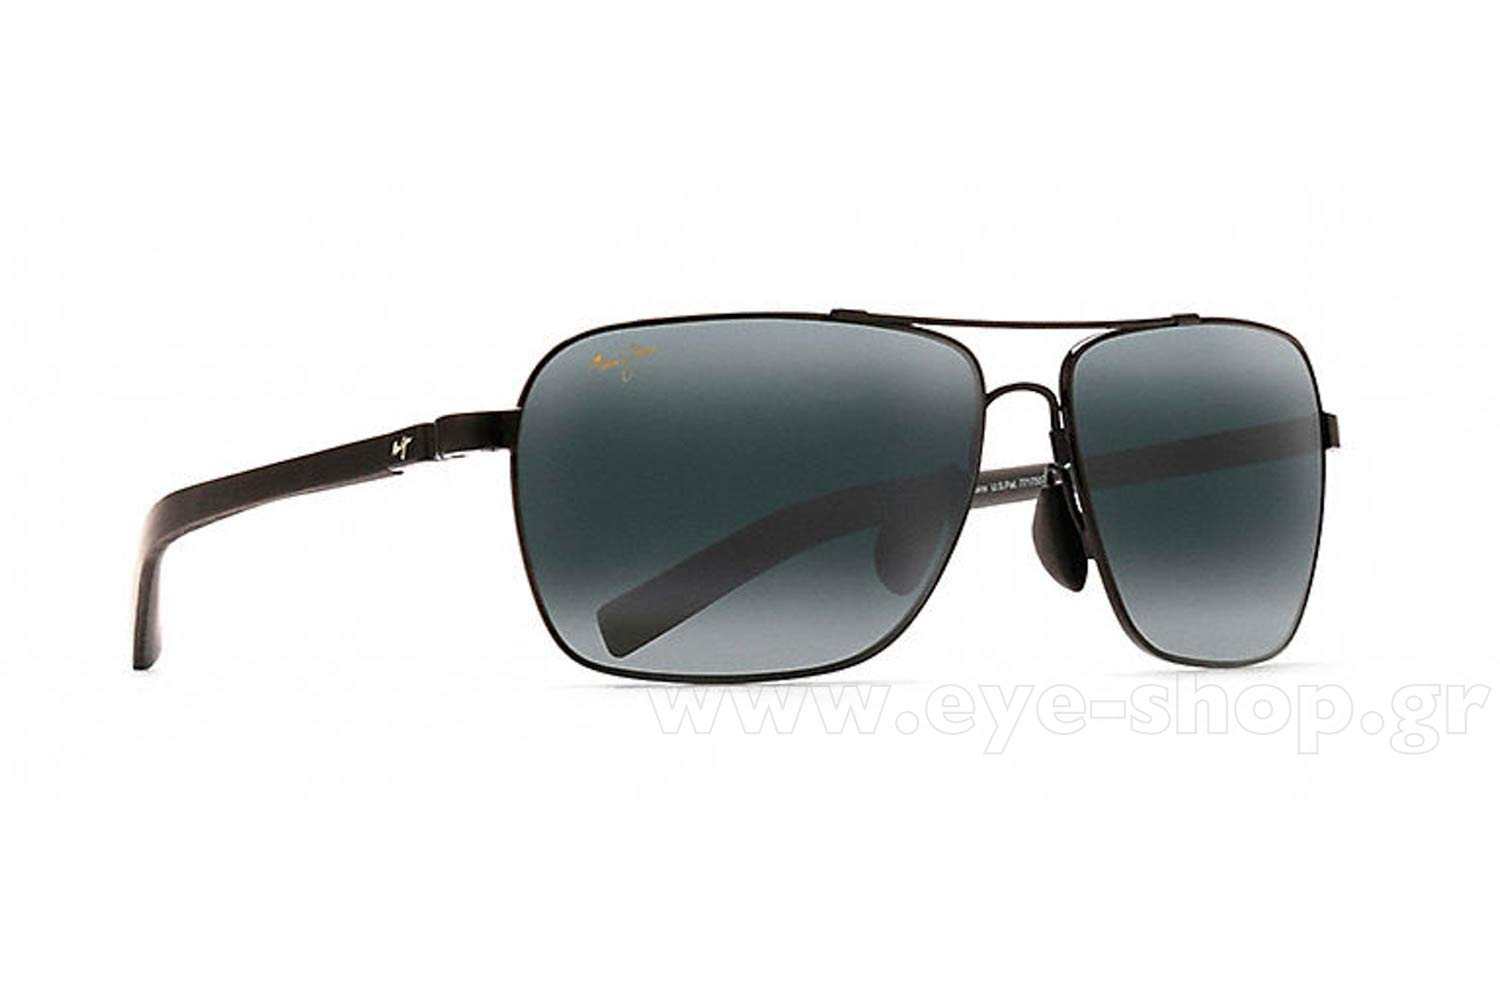 77a0a5b0f7a SUNGLASSES Maui Jim FREIGHT TRAINS 326-02 - Gray double gradient mirror  Polarized Plus2 (Rxable +3